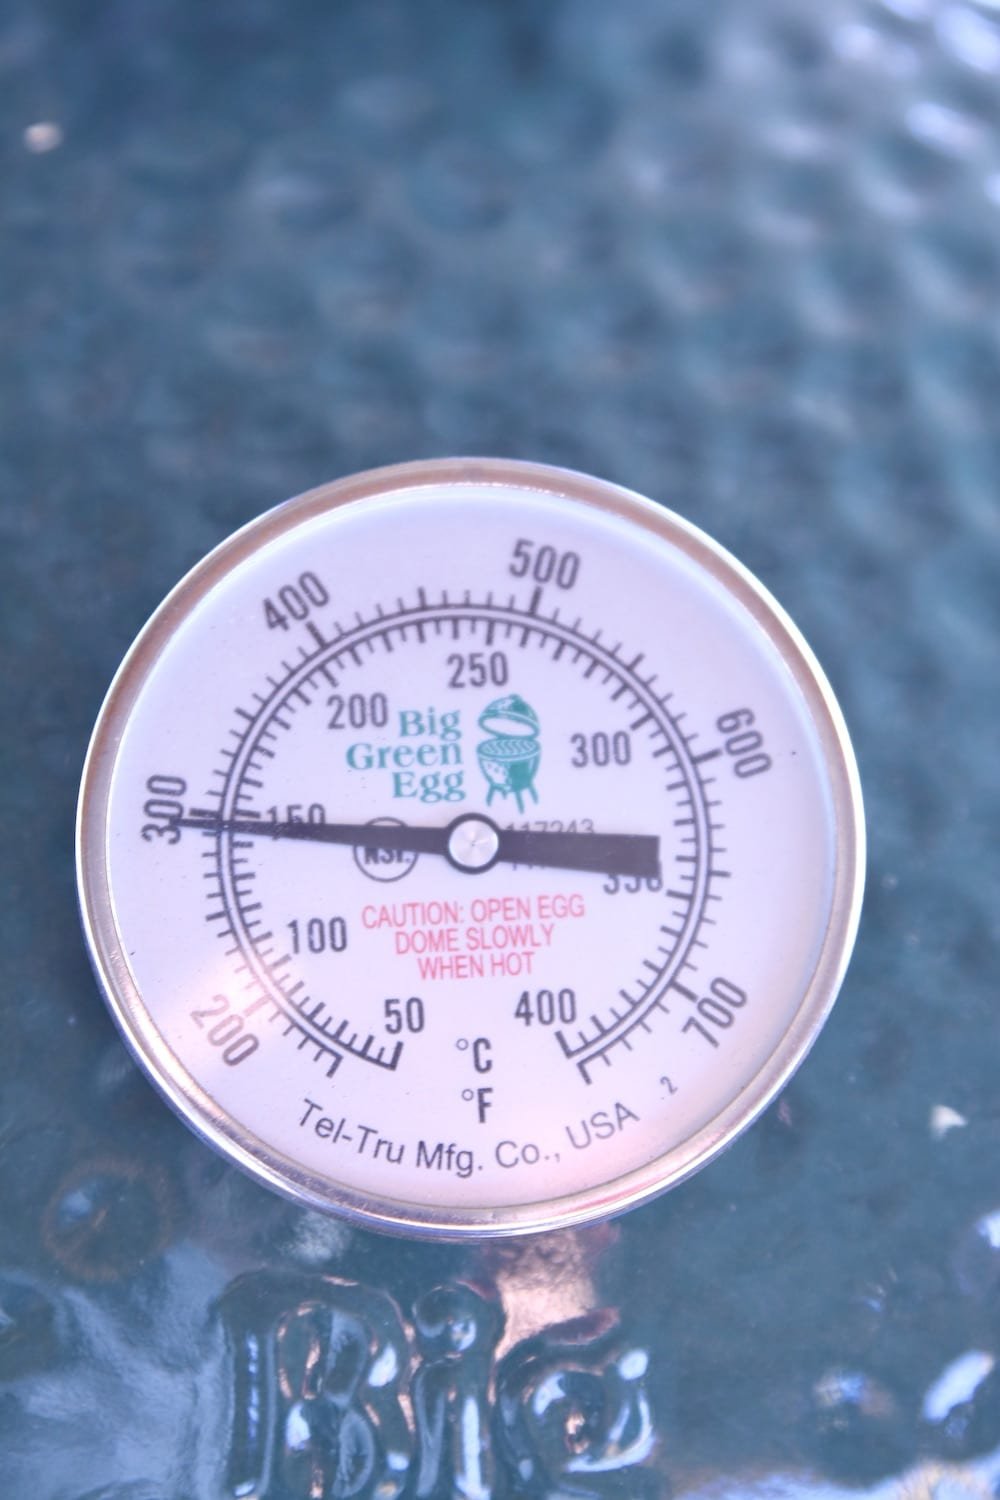 Big green egg grill - thermometer at 300°